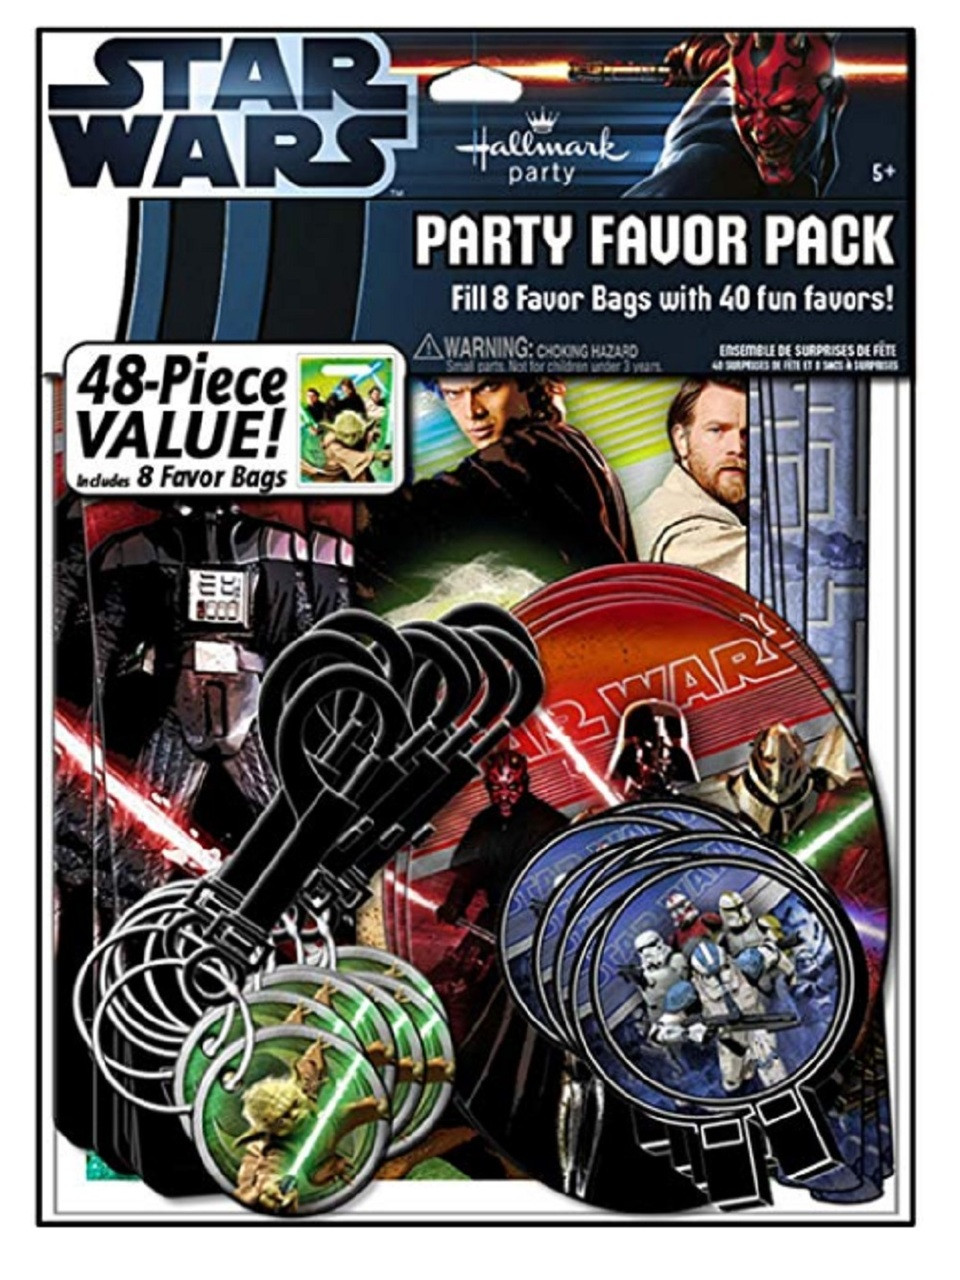 Party Favors - Star Wars - Value Pack - 48pc Set